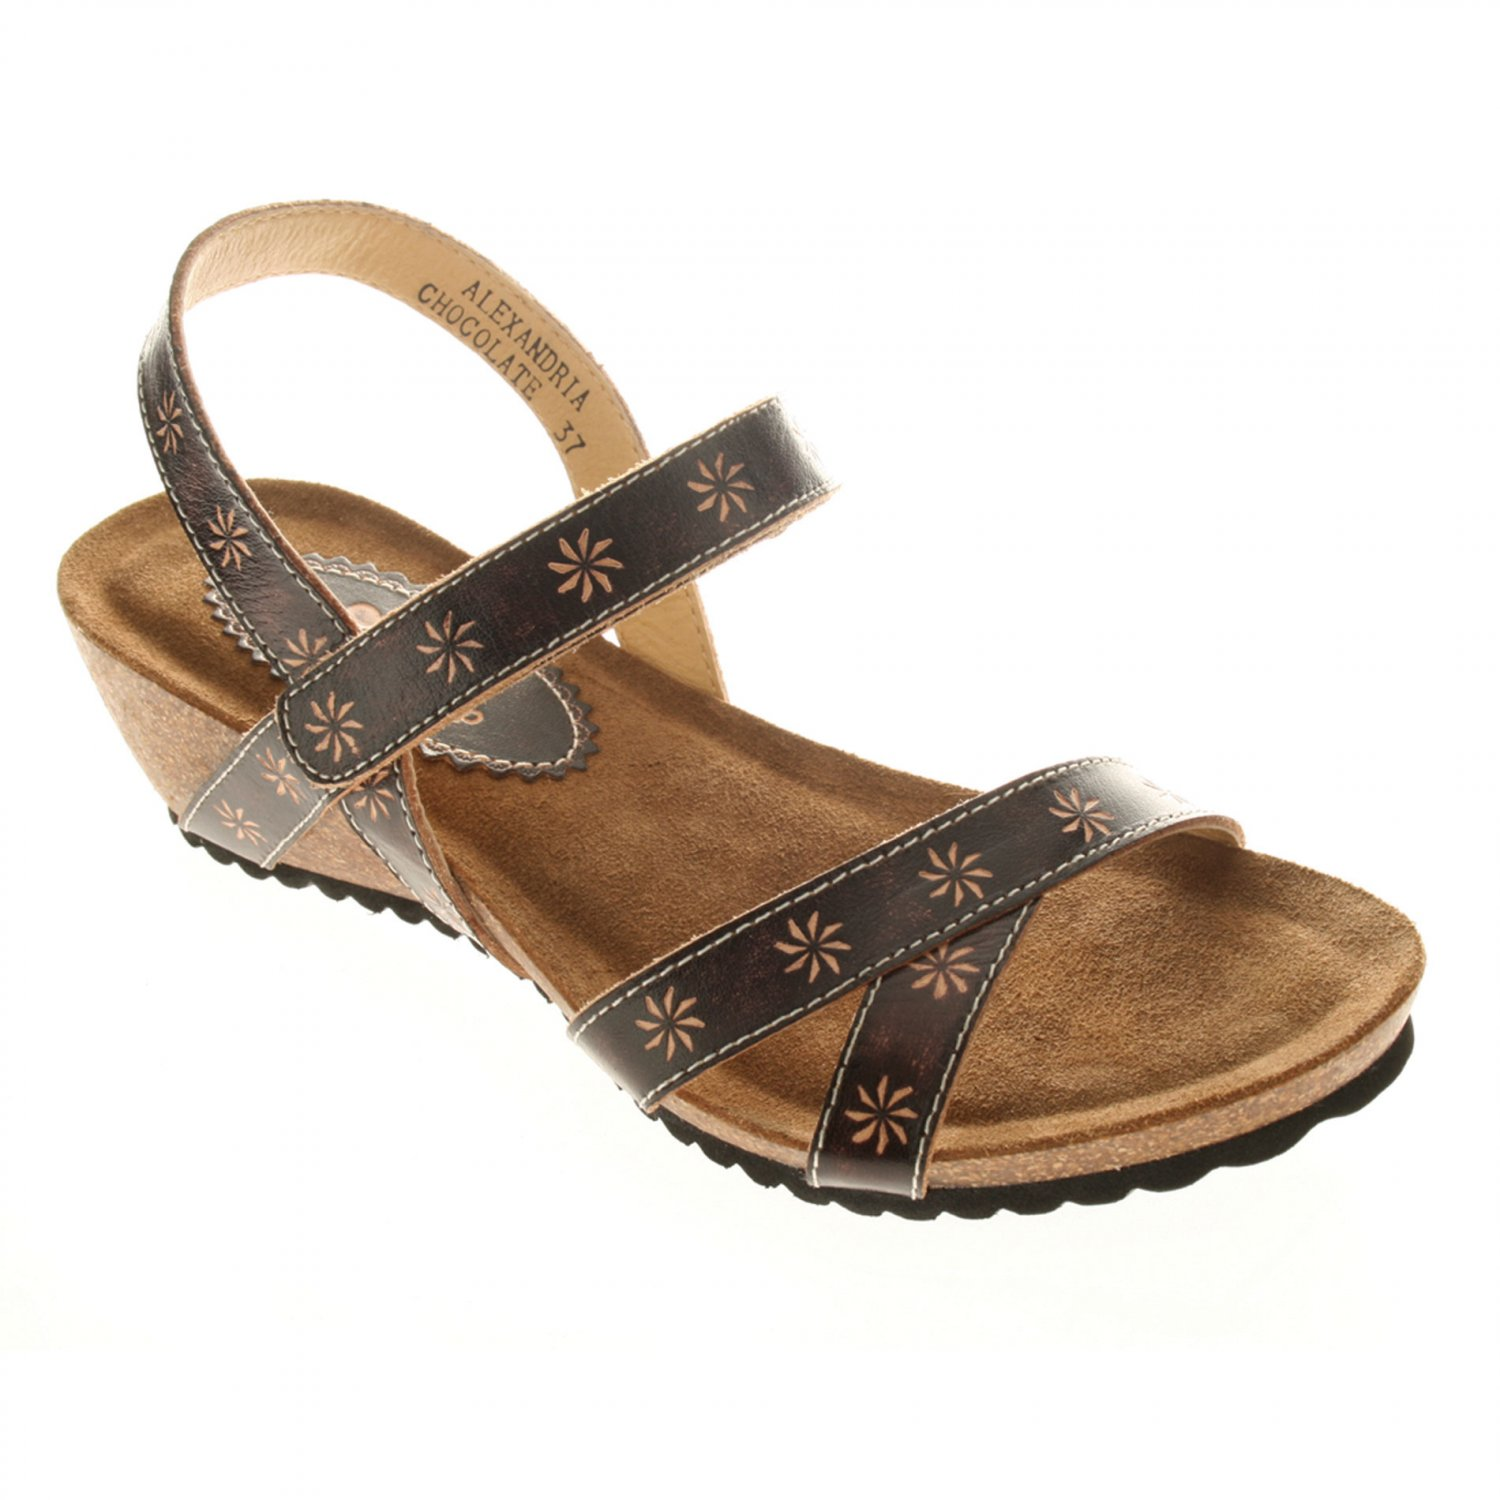 Spring Step ALEXANDRIA Sandals Shoes All Sizes & Color